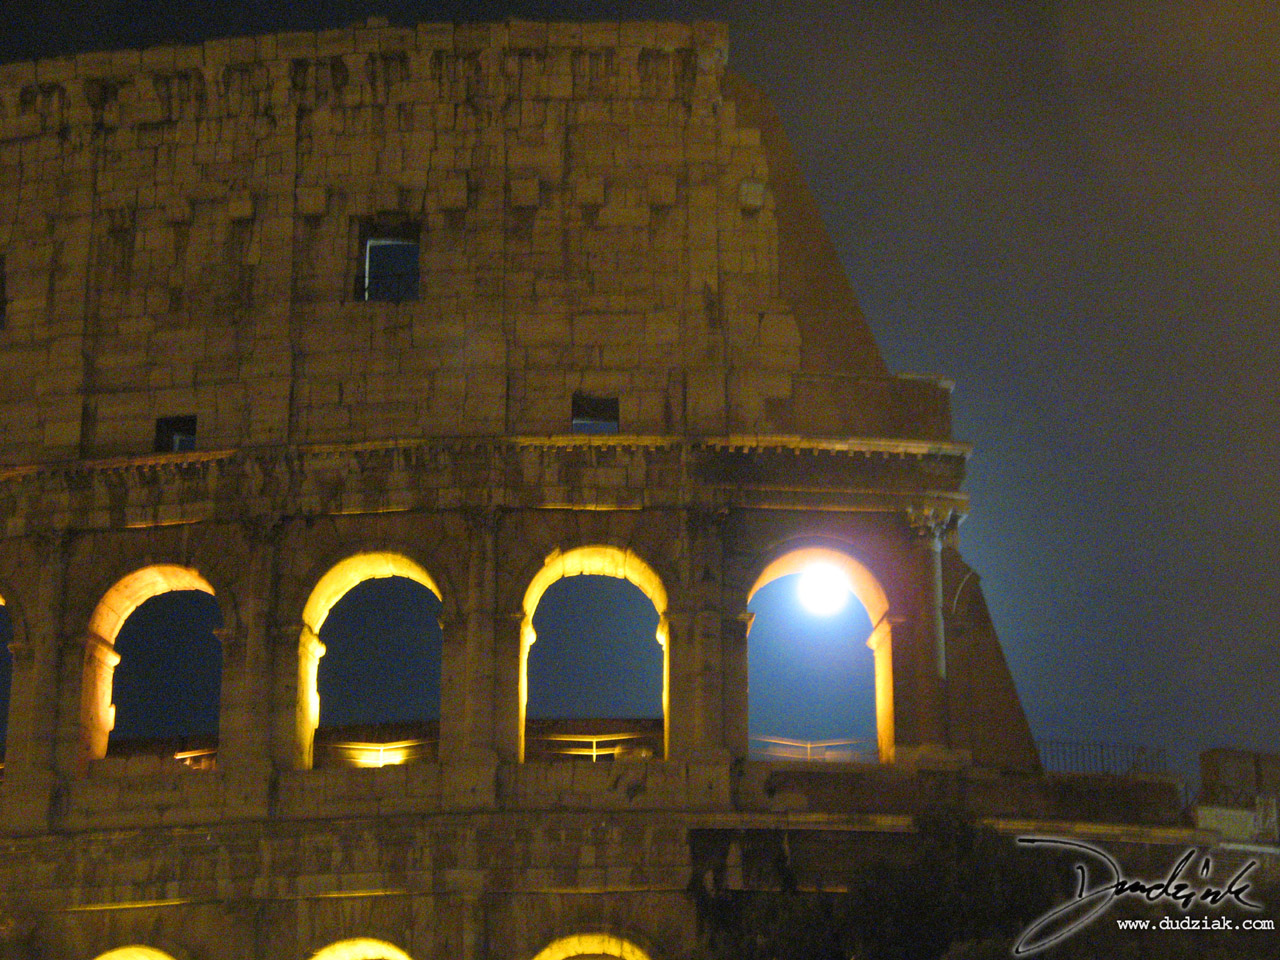 moonlight,  Colosseum,  Roman Colosseum,  night,  Rome,  Italy,  Roma,  Roman Arch,  moon,  Flavian Amphitheatre